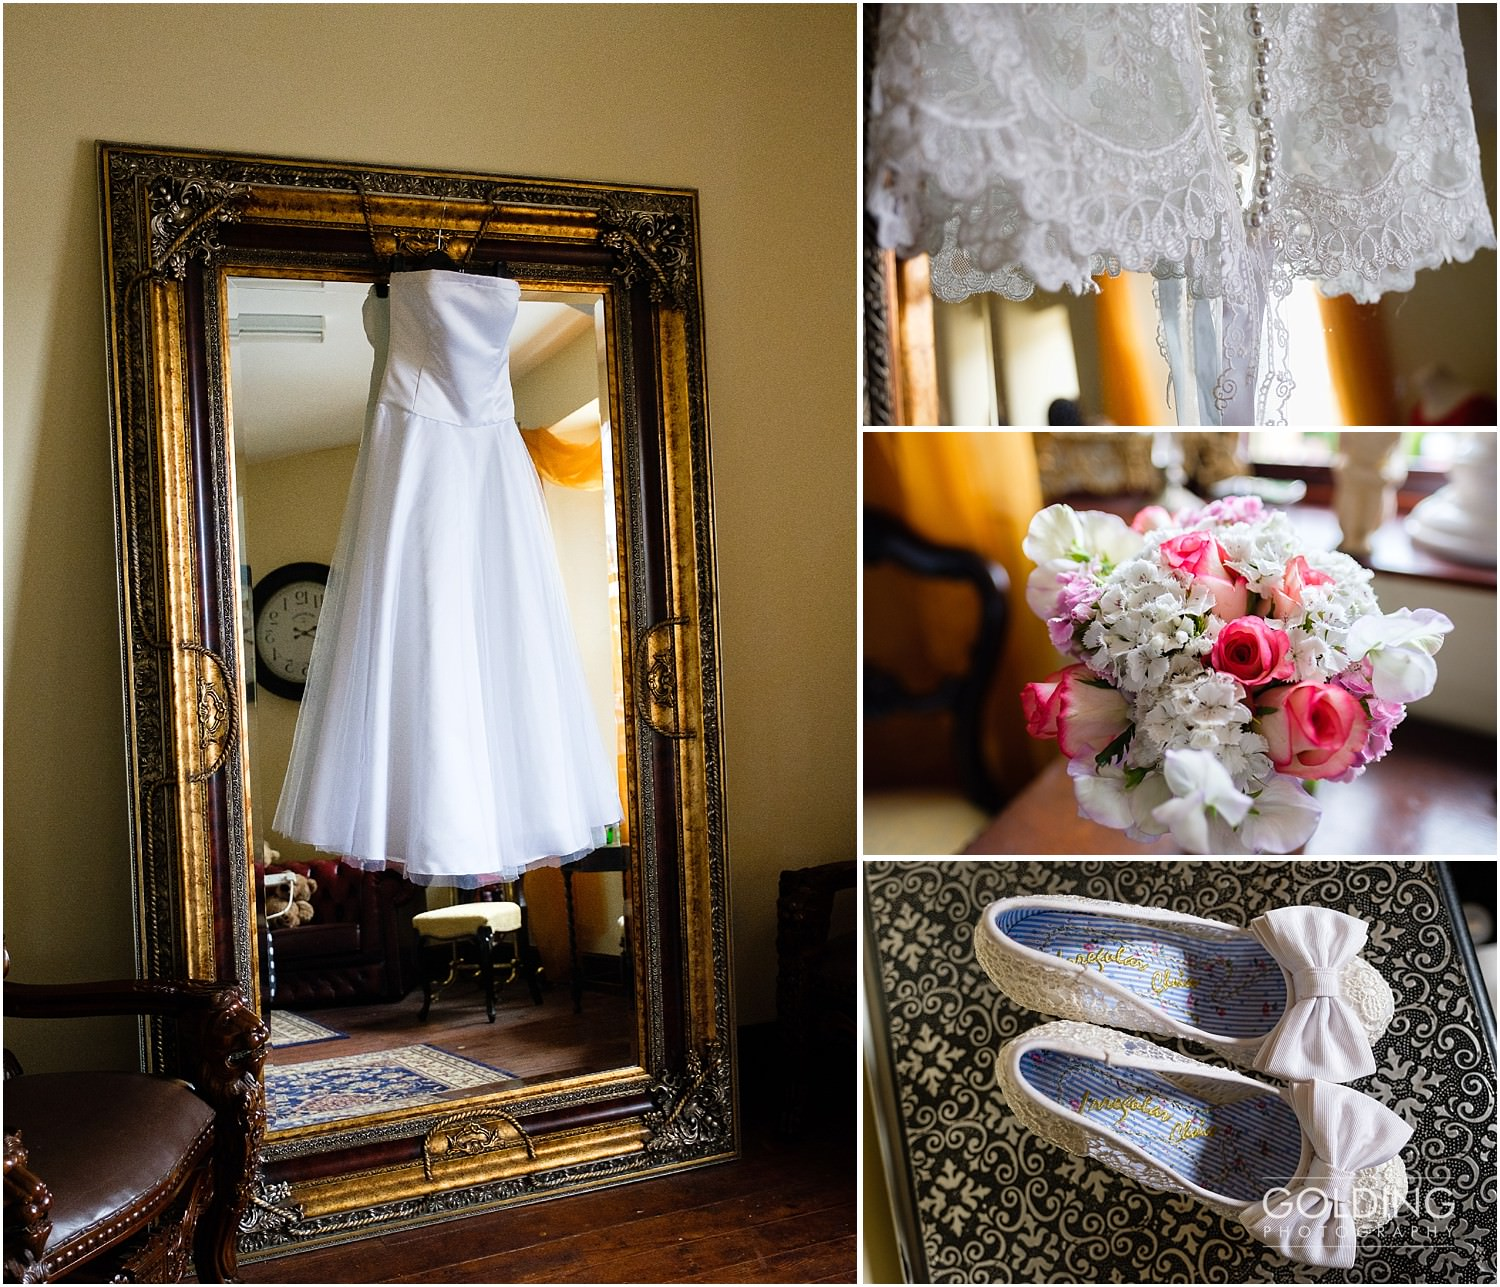 Rebecca's wedding dress, bouquet and shoes